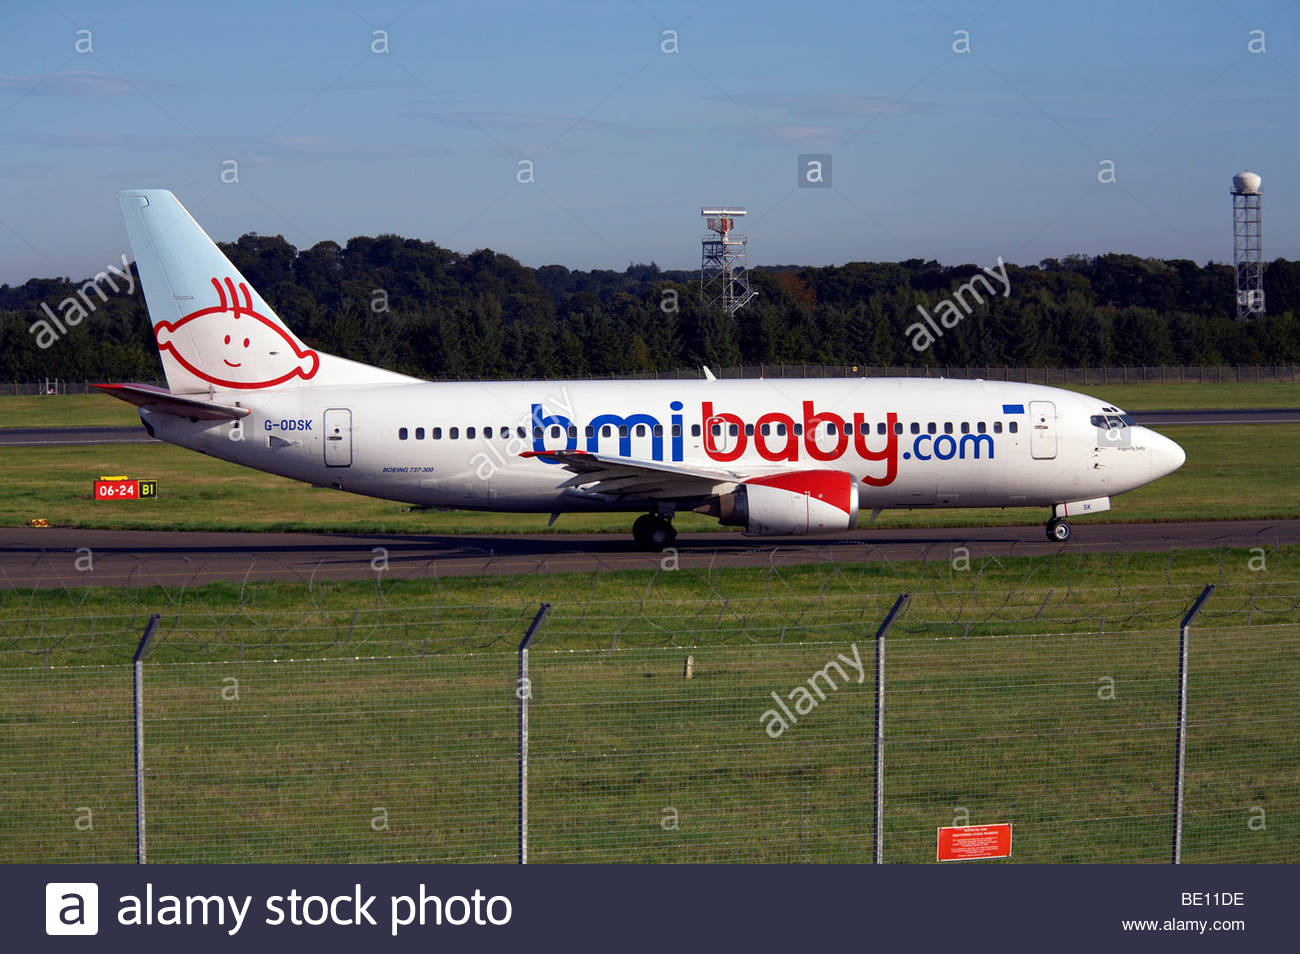 BmiBaby Boeing 737 taxiing at airport - Stock Image